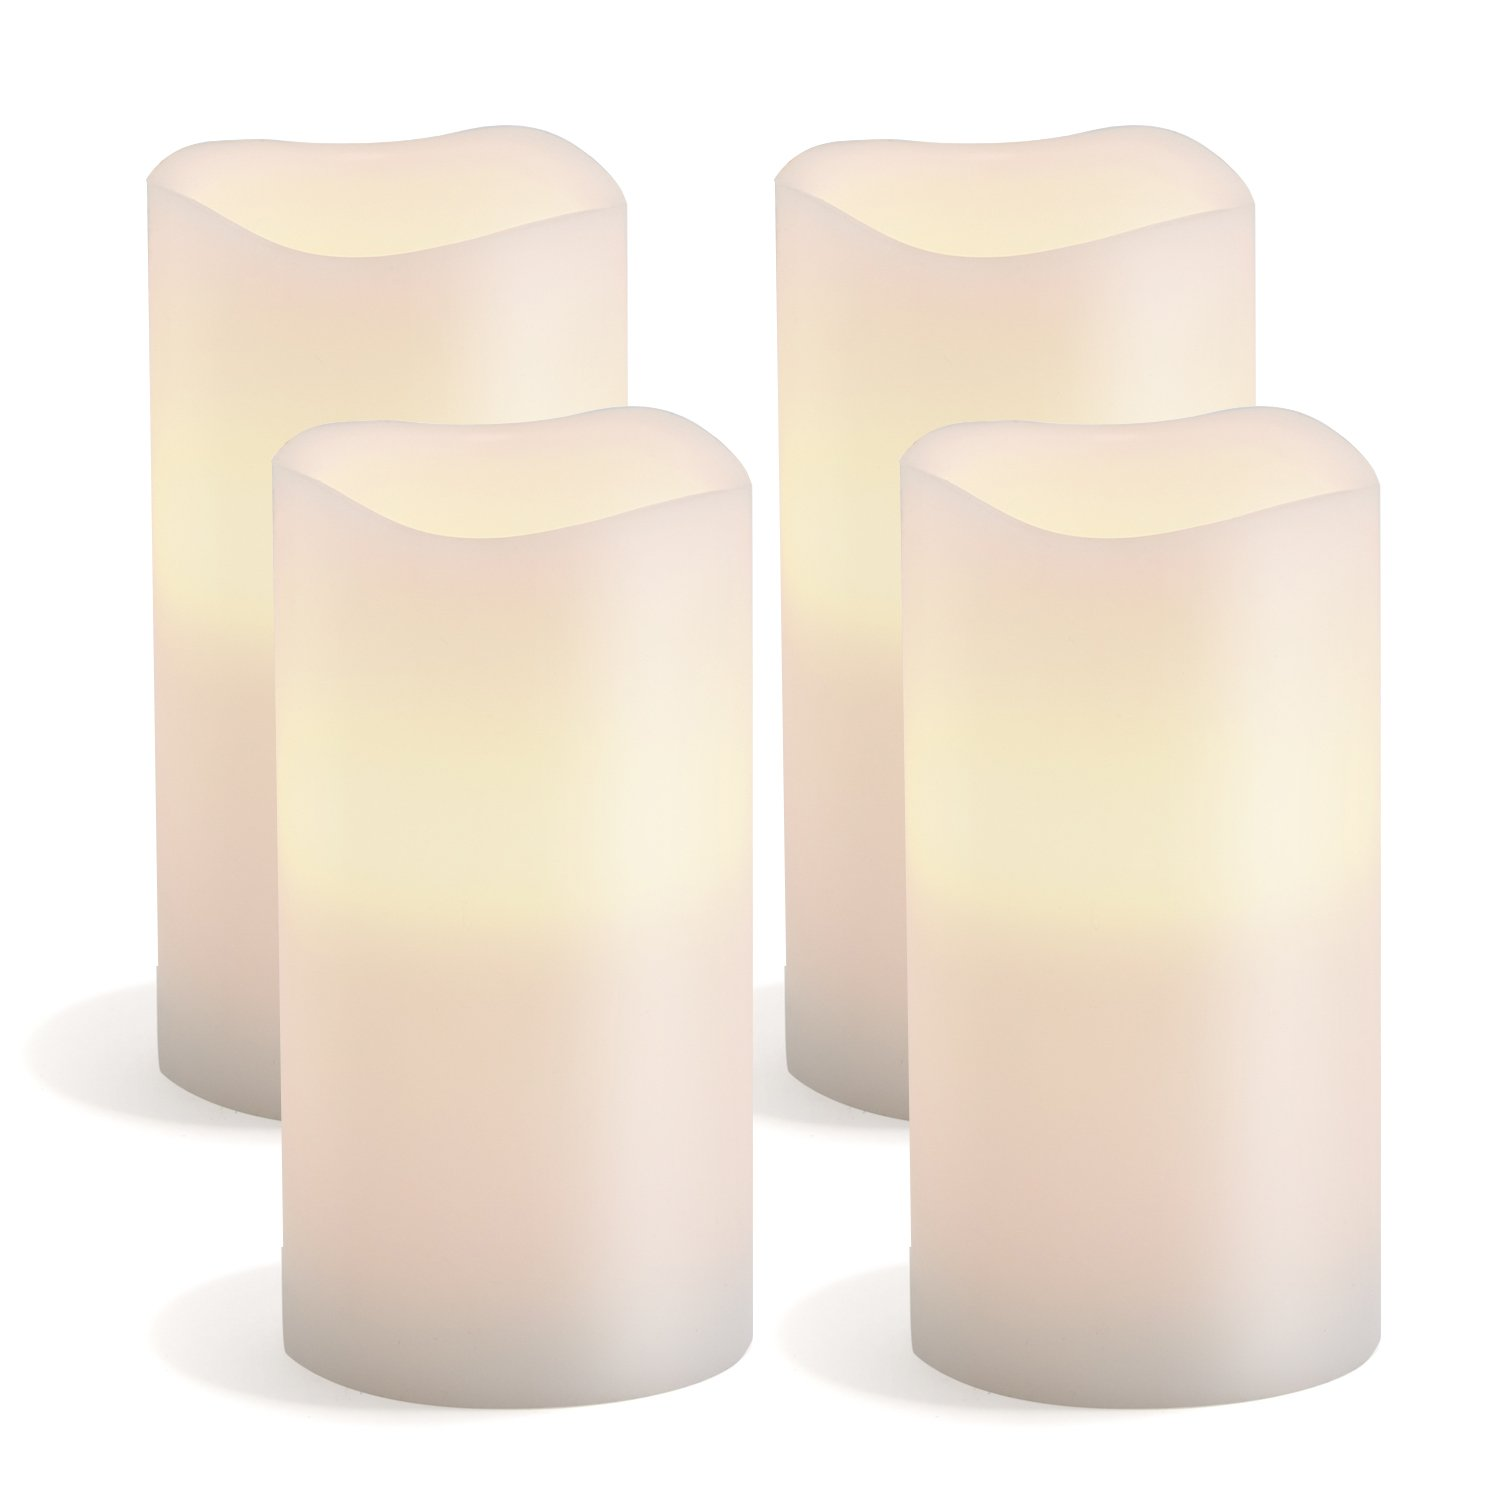 """Large Flameless Pillar Candles, Set of 4, White Wax Candle with Melted Edge, 3"""" x 6"""", Warm White LEDs - Batteries Included"""